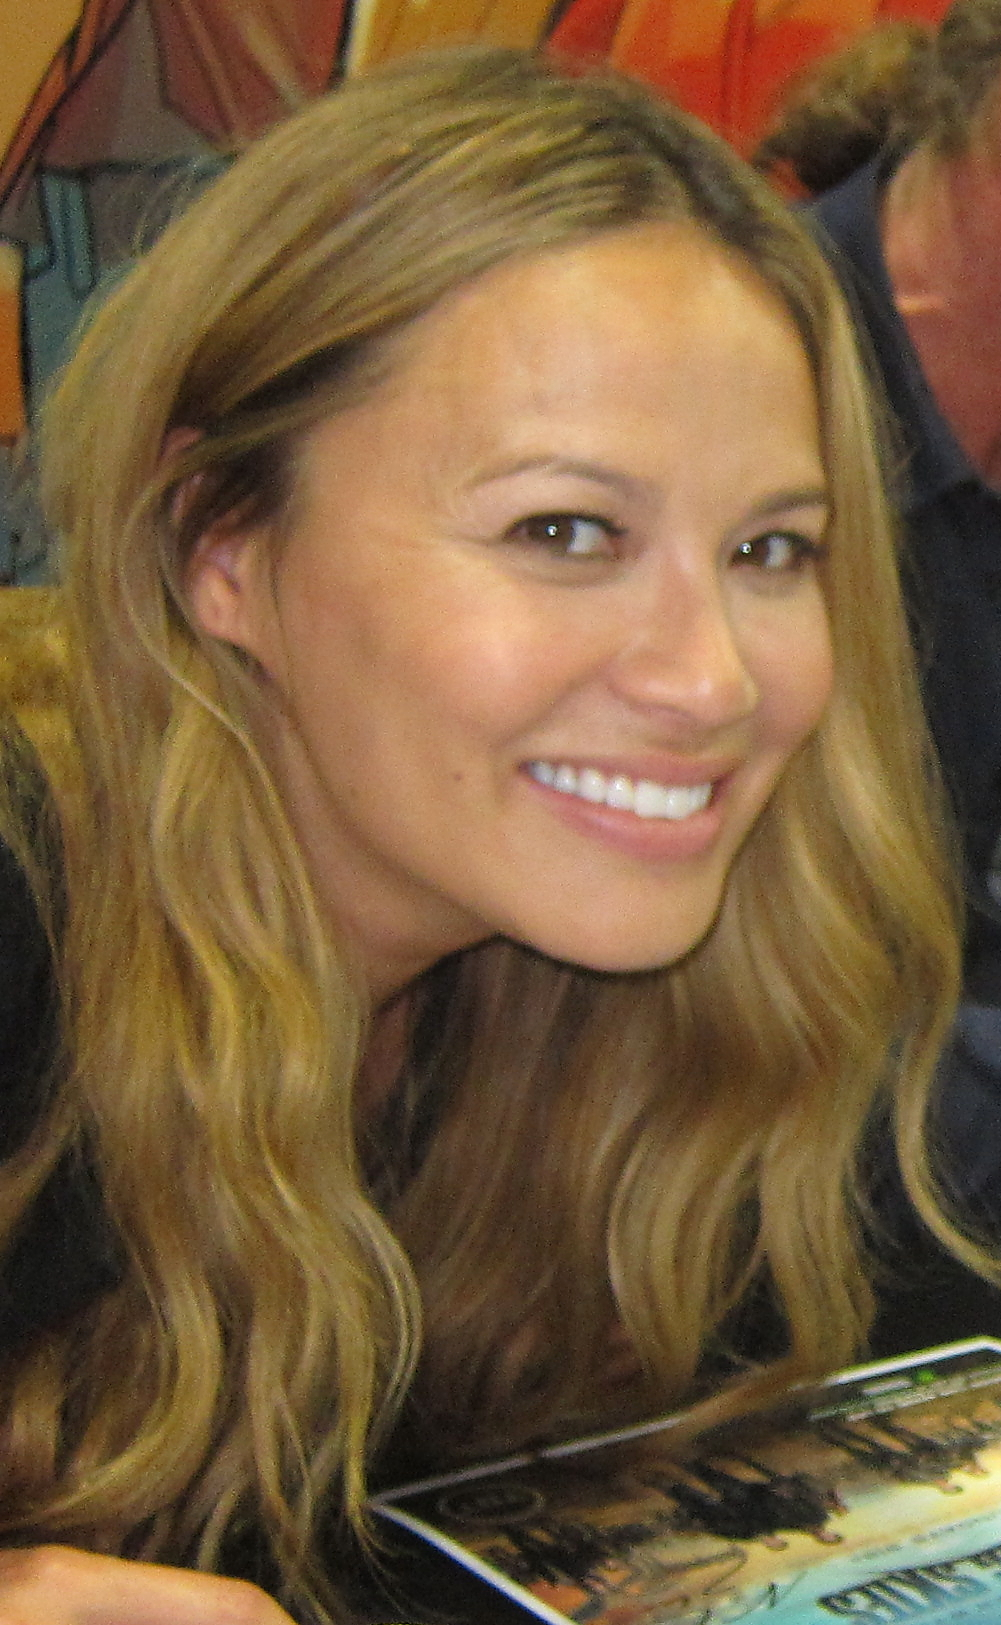 moon bloodgood facebookmoon bloodgood instagram, moon bloodgood 2016, moon bloodgood фото, moon bloodgood imdb, moon bloodgood facebook, moon bloodgood, moon bloodgood husband, moon bloodgood wiki, moon bloodgood twitter